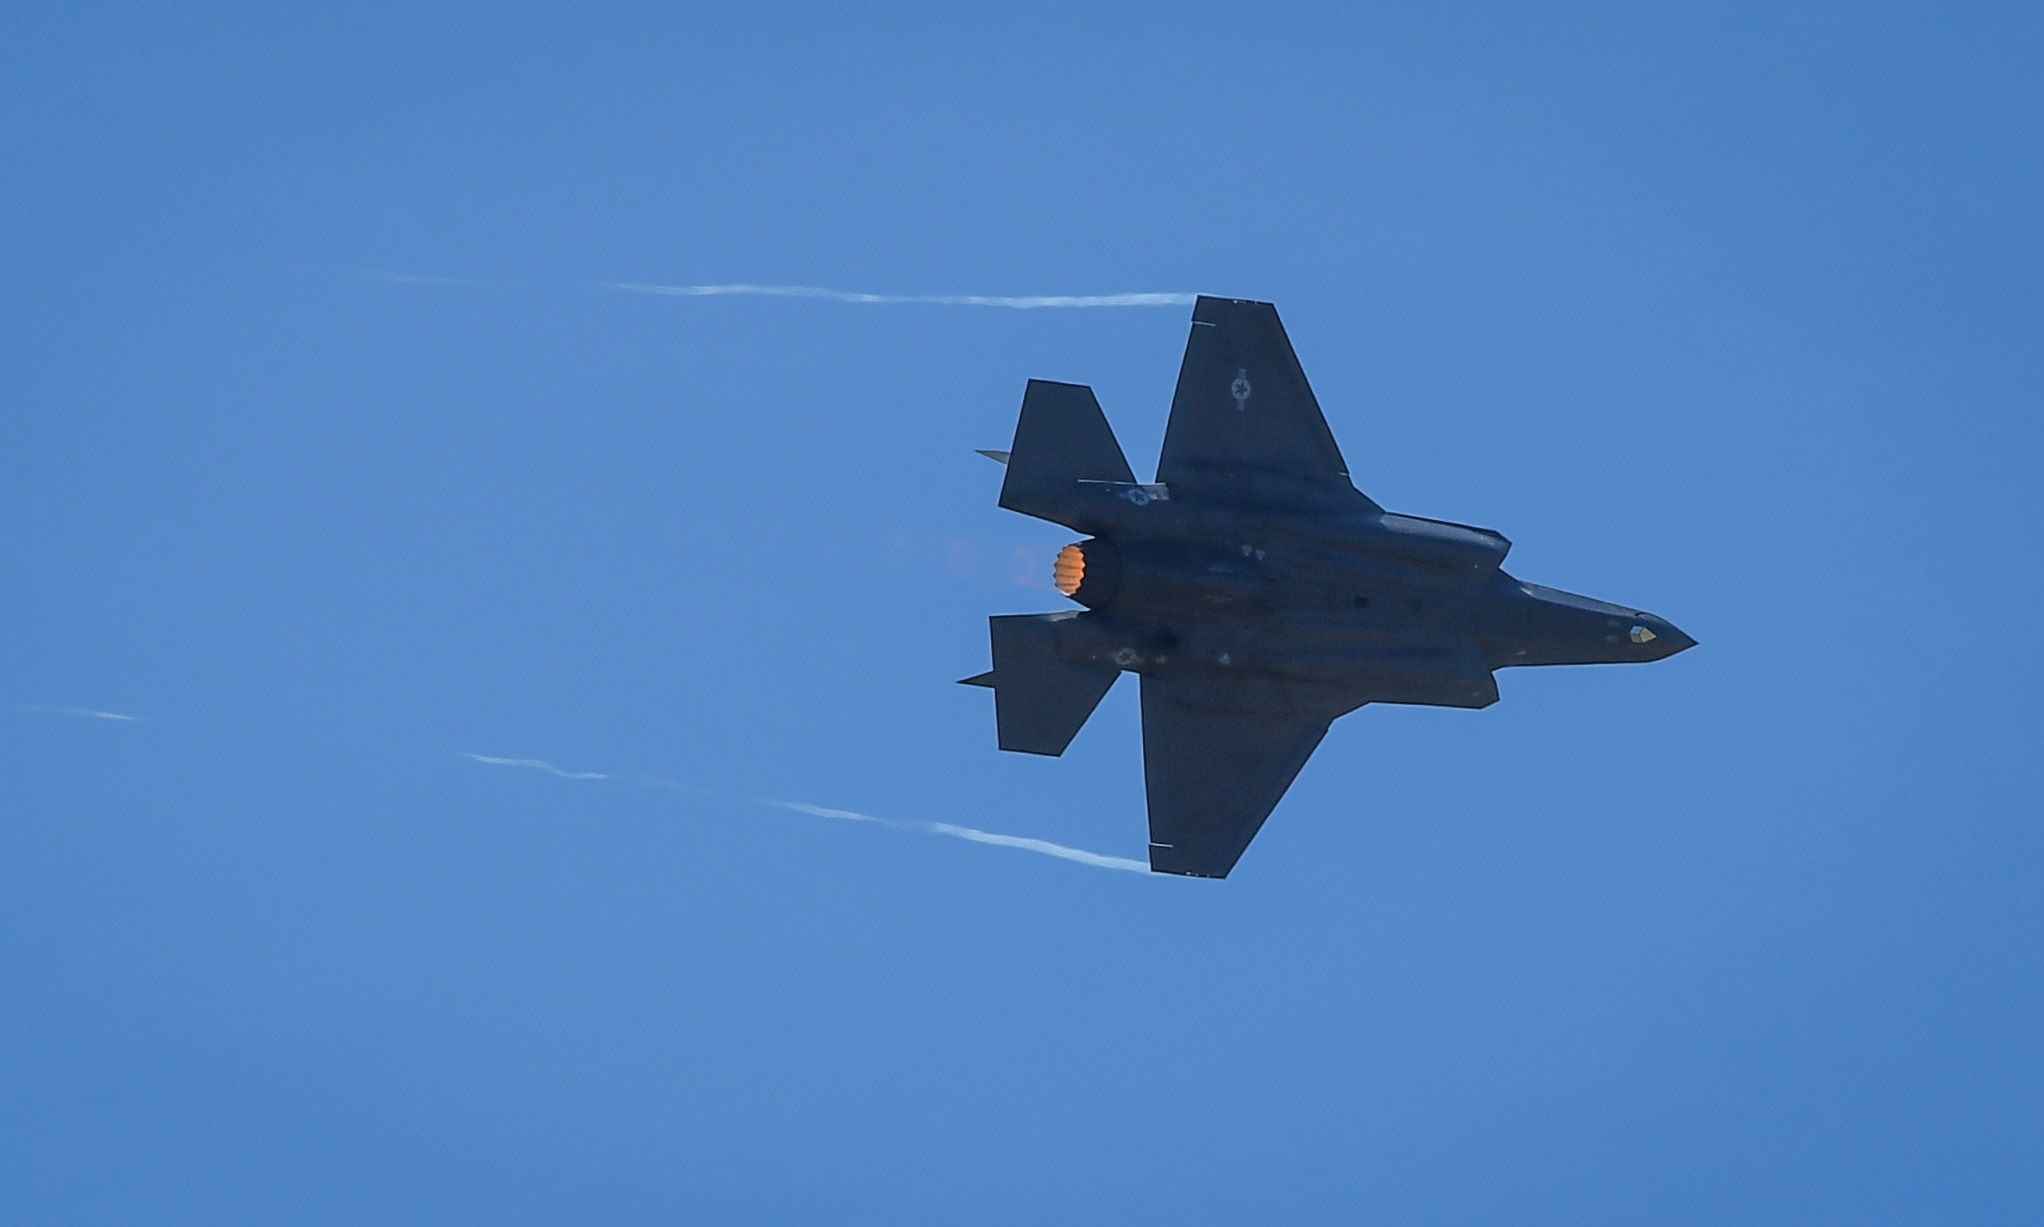 An F-35A Lightning II from Hill Air Force Base, Utah, performs a flight demonstration for an audience at the Paris Air Show June 19, 2017 at Le Bourget, France. Held every year, the Paris Air Show represents a unique opportunity for the United States to showcase its leadership in aerospace technologies. Direct participation in the air show supports U.S. government security policy and strategic defense objectives. (U.S. Air Force photo/ Tech. Sgt. Ryan Crane)